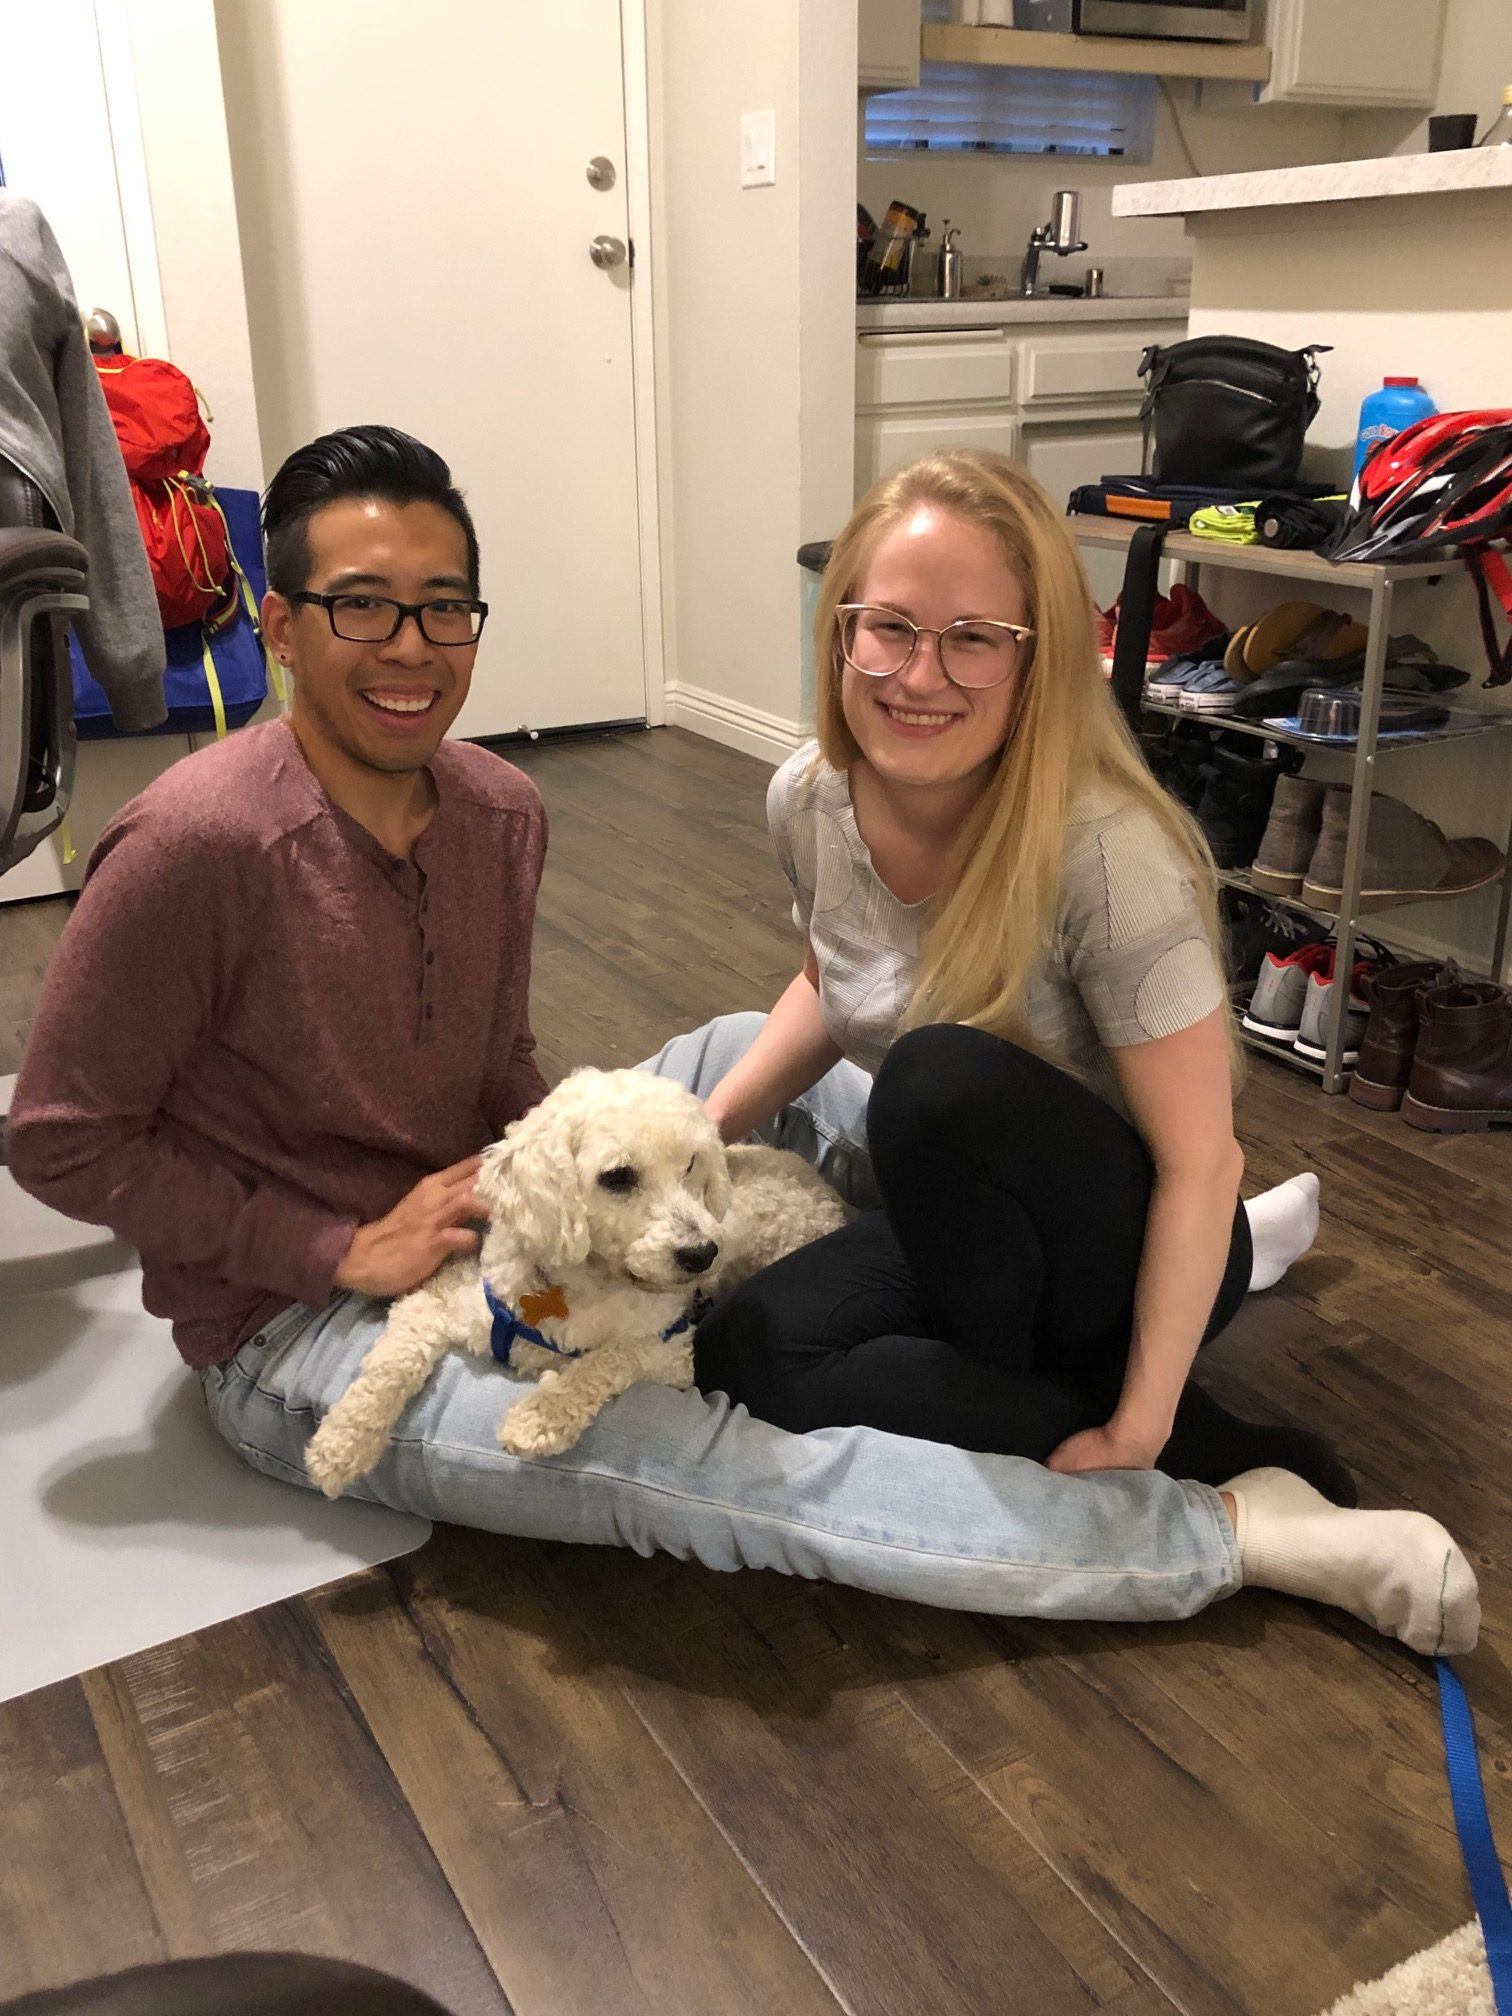 After living in a van for many years, Curly is absolutely thrilled with his new life with Anna and Jonathan